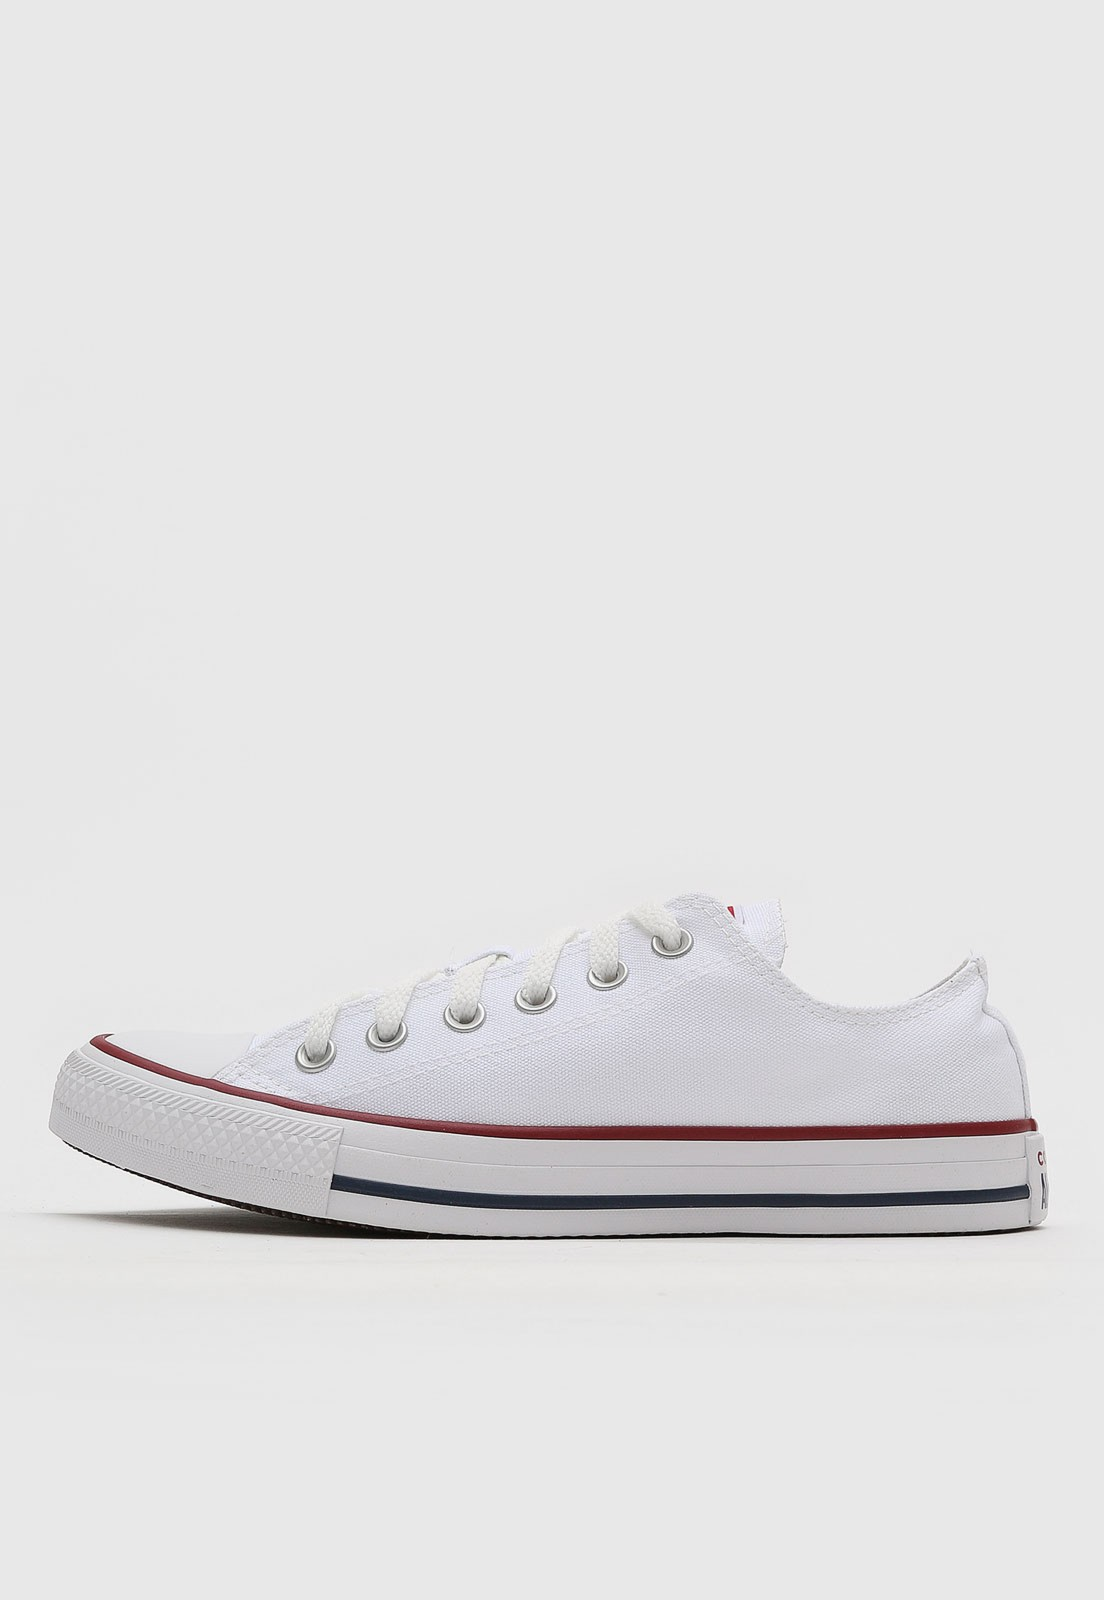 TÊNIS CONVERSE ALL STAR CT AS CORE OX BRANCO CT00010001